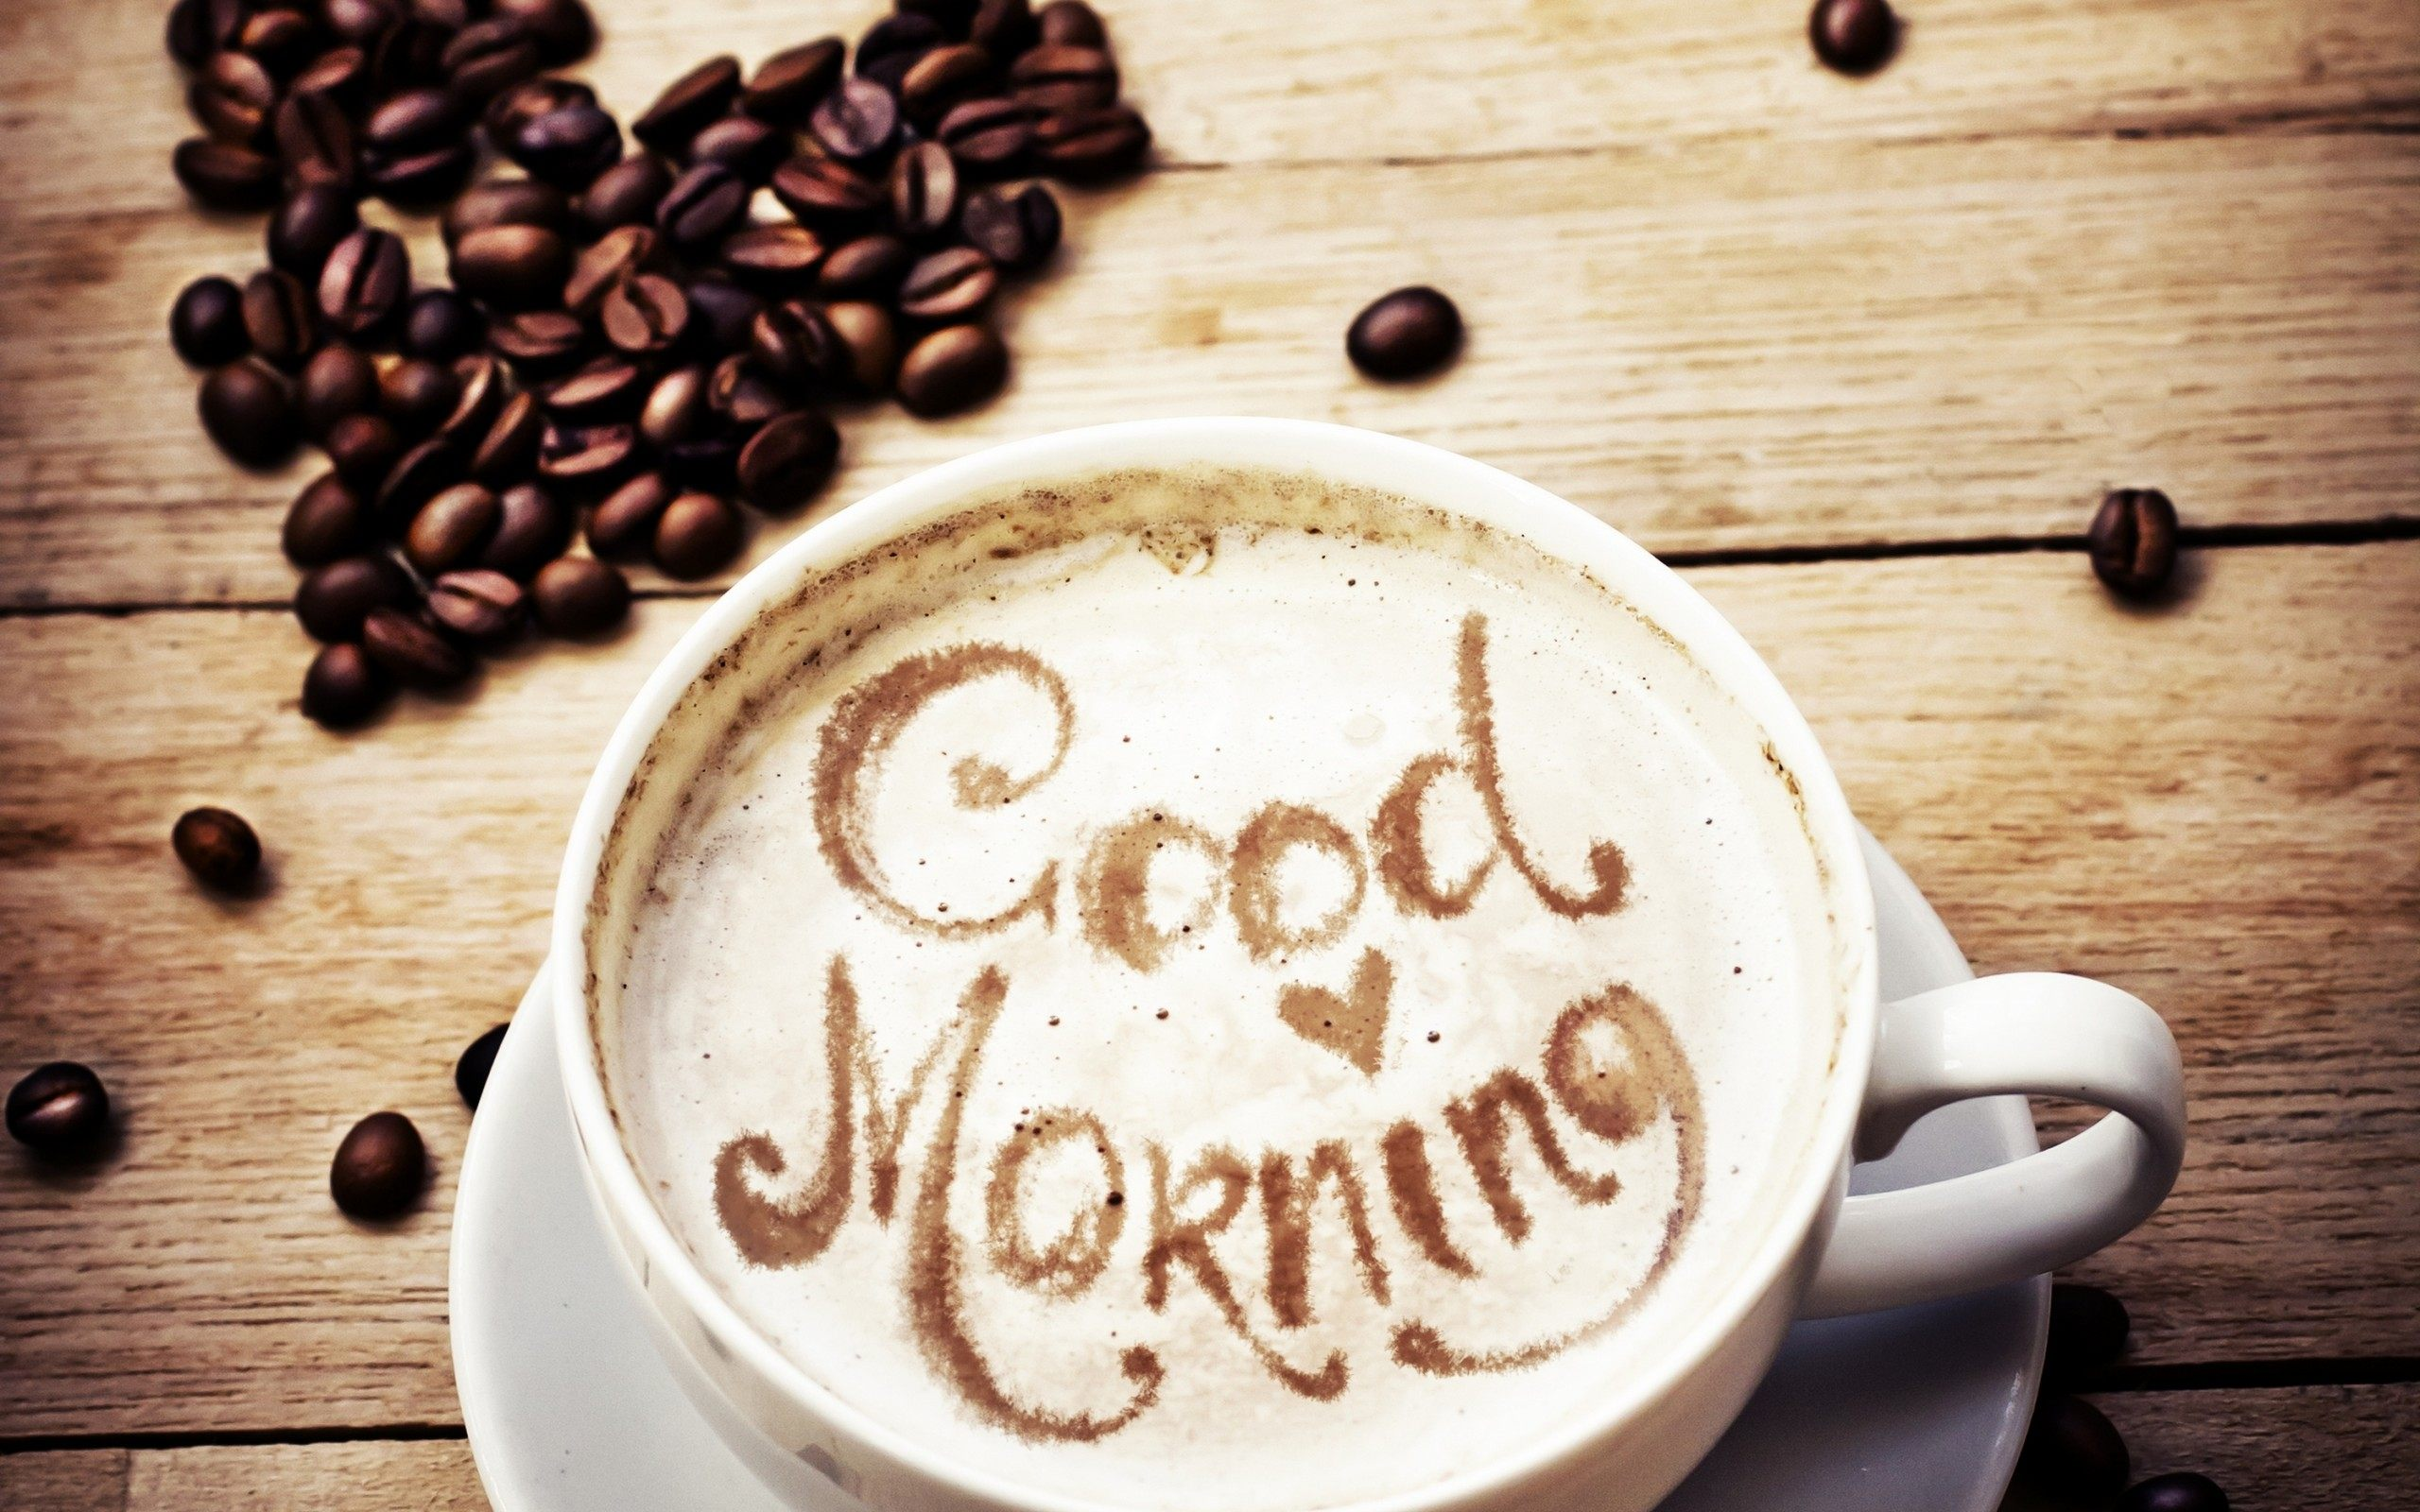 Best Good Morning Wallpapers for Computer/Laptop: